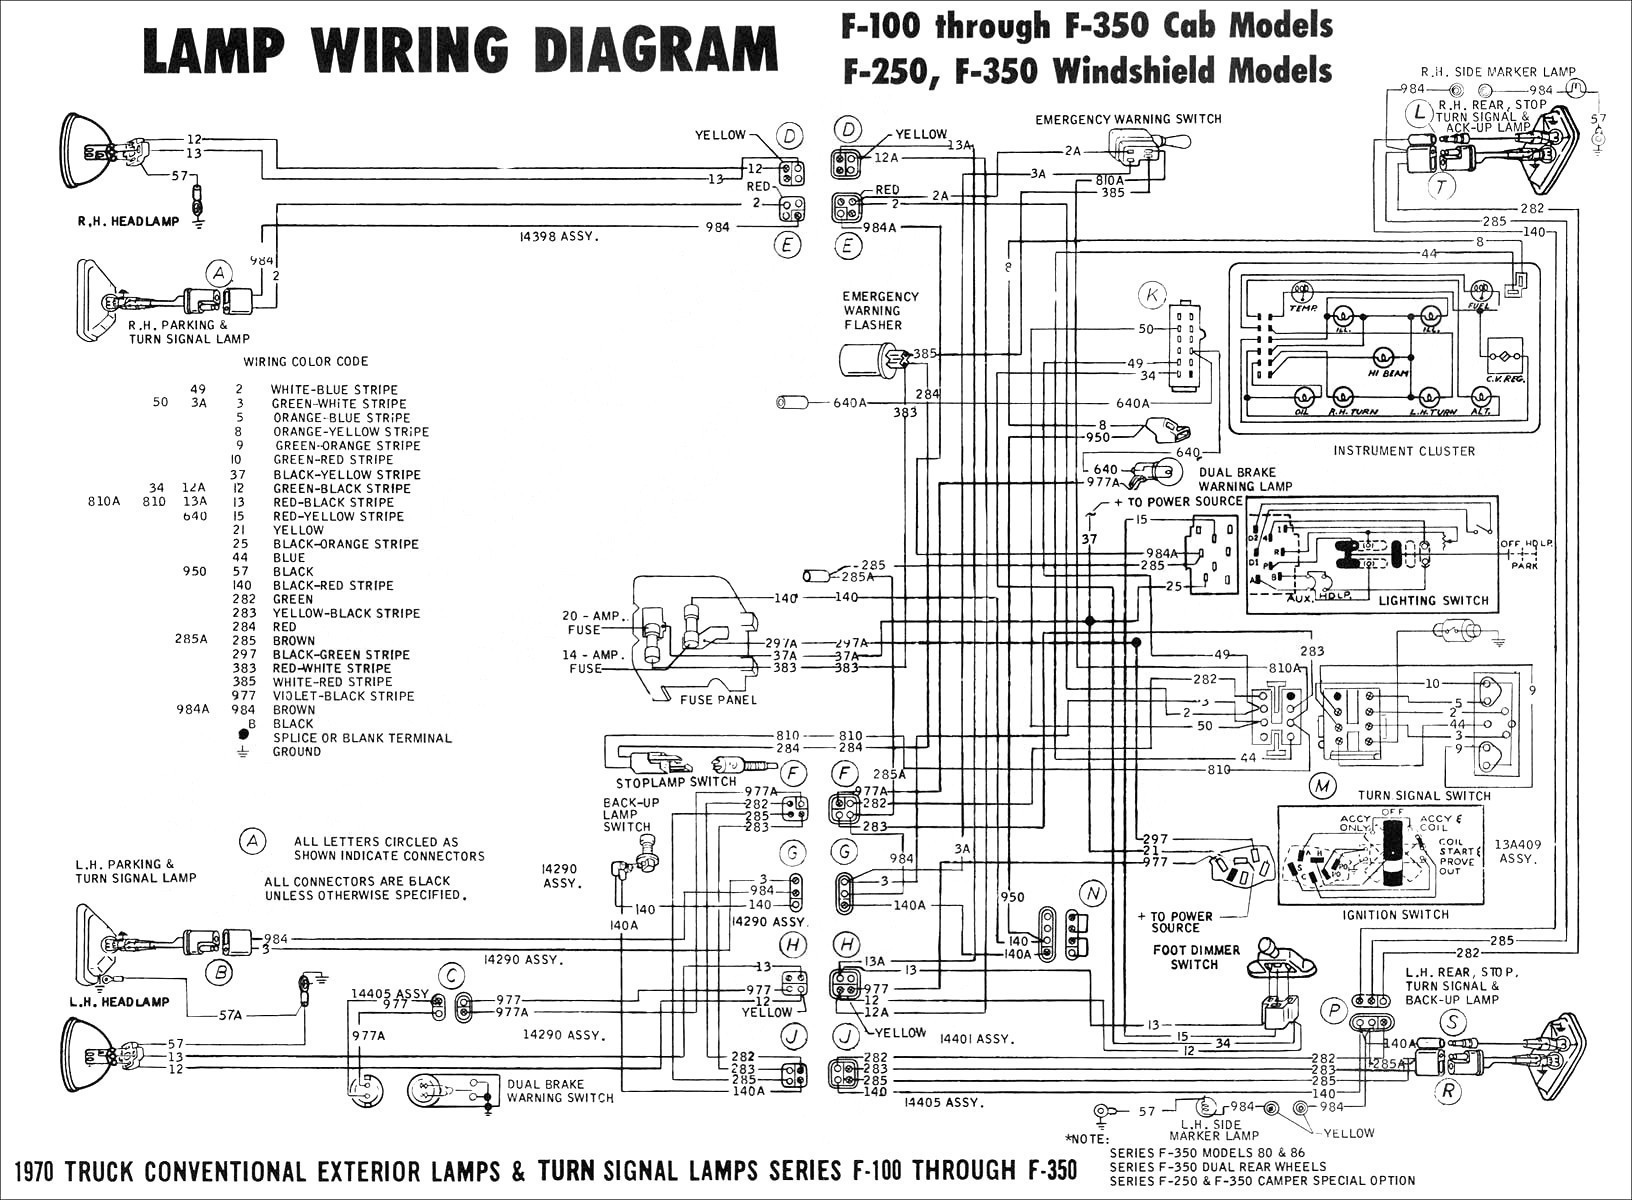 2006 Tacoma Fuse Diagram Worksheet And Wiring Box 2010 Schematics Rh Enr Green Com 2008 Toyota 2007